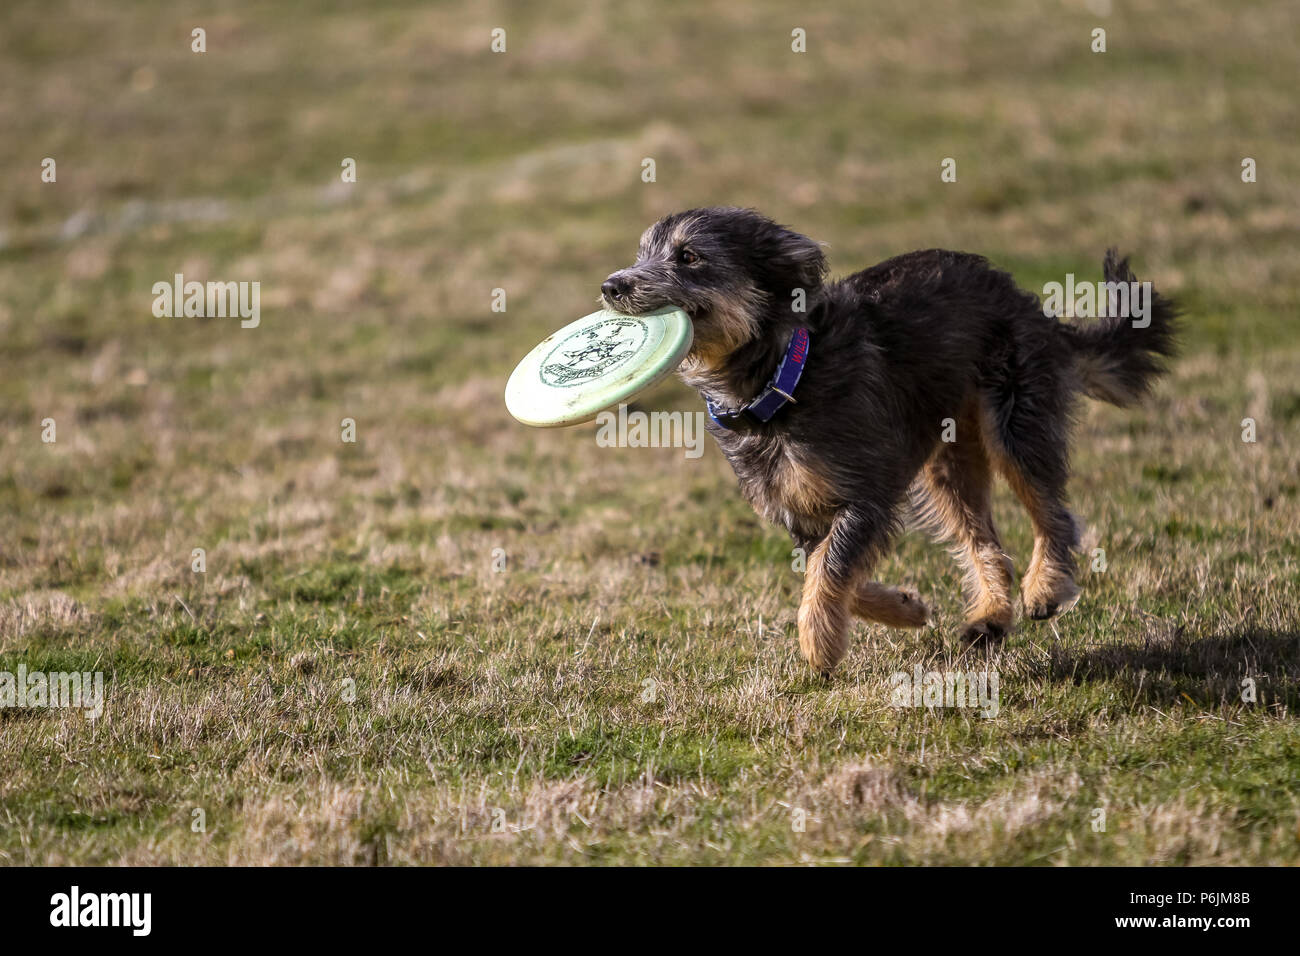 Obstacle Course Dogs Dog Show Stock Photos Amp Obstacle